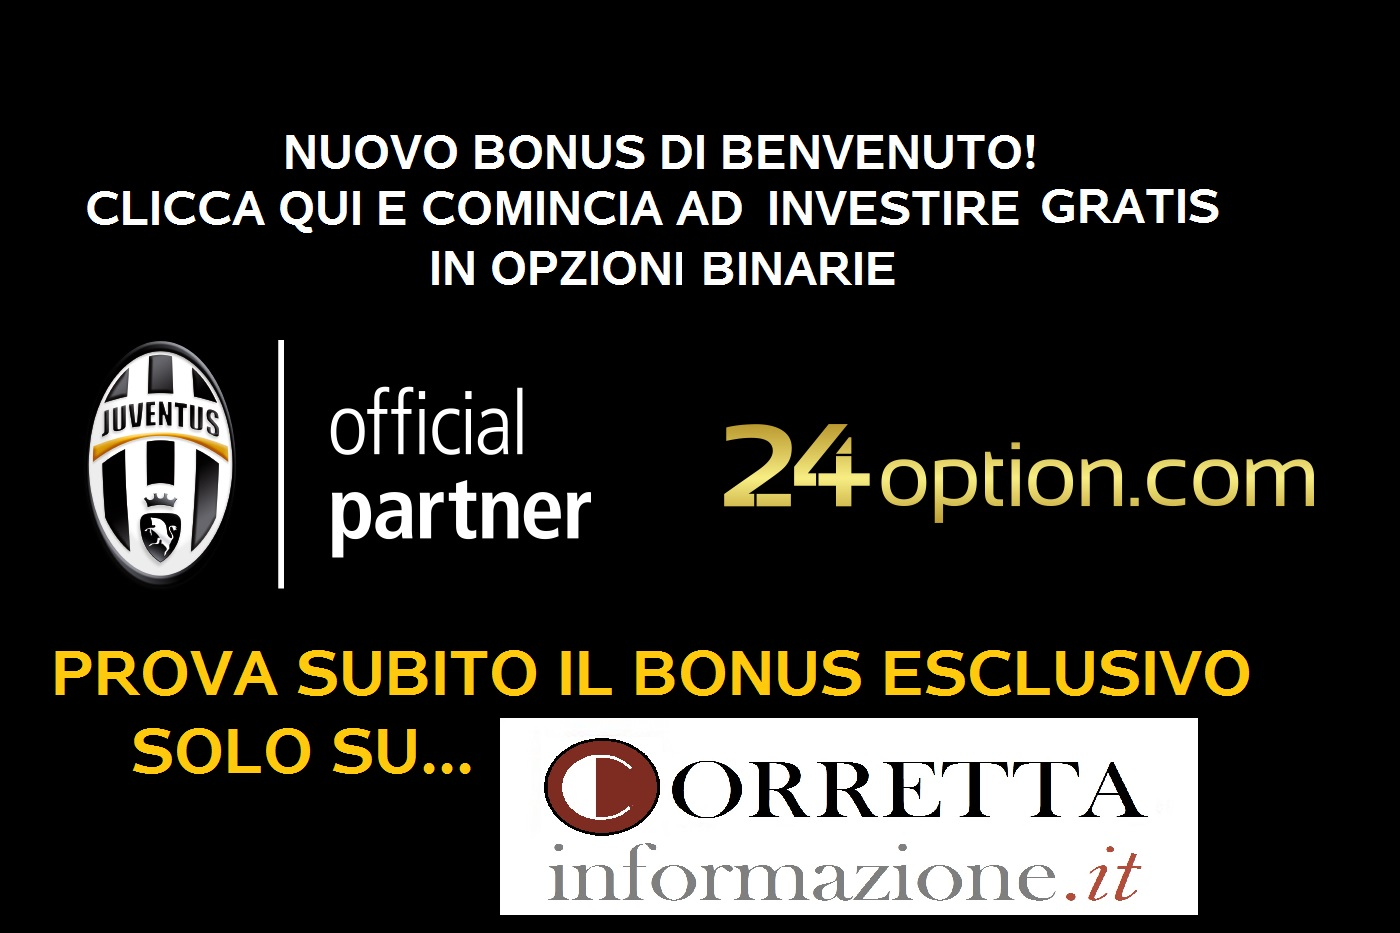 Video opzioni binarie 24option